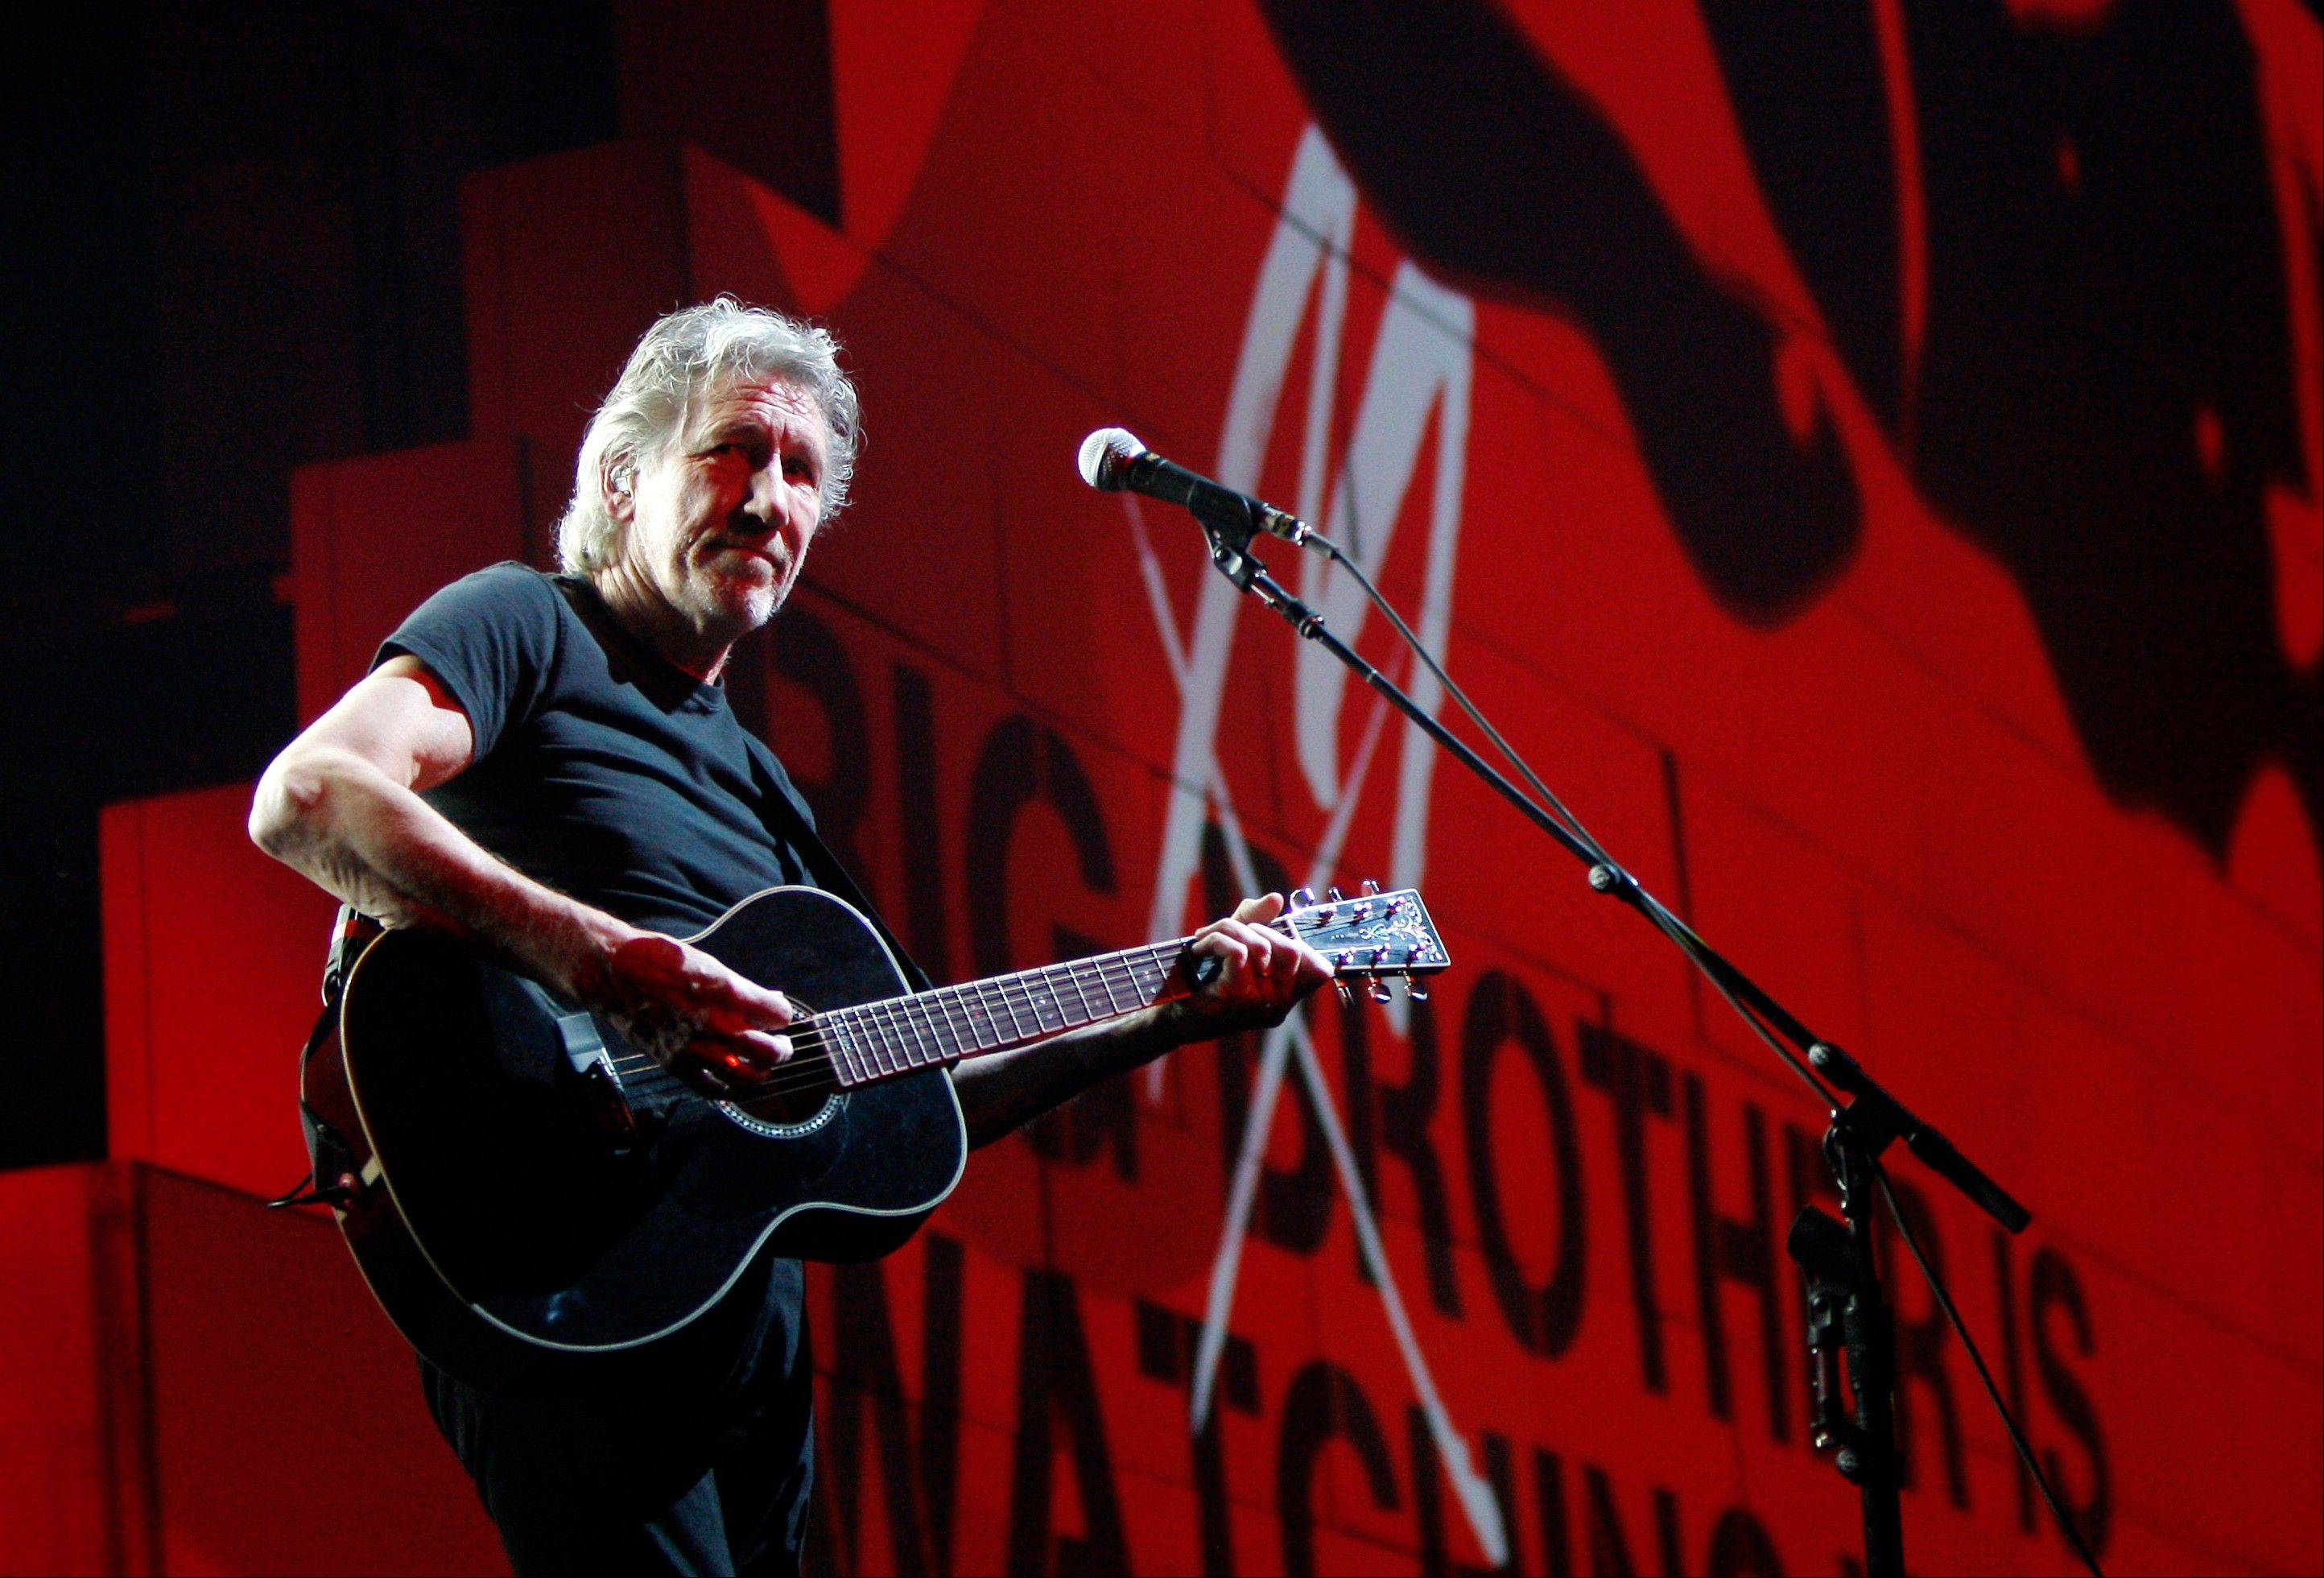 Now that his three-year world tour for �The Wall� has finally come to an end, Roger Waters wants to set the record straight over criticism he�s received from Jewish groups regarding his use of the Star of David symbol in the show and his support for a cultural boycott of Israel.